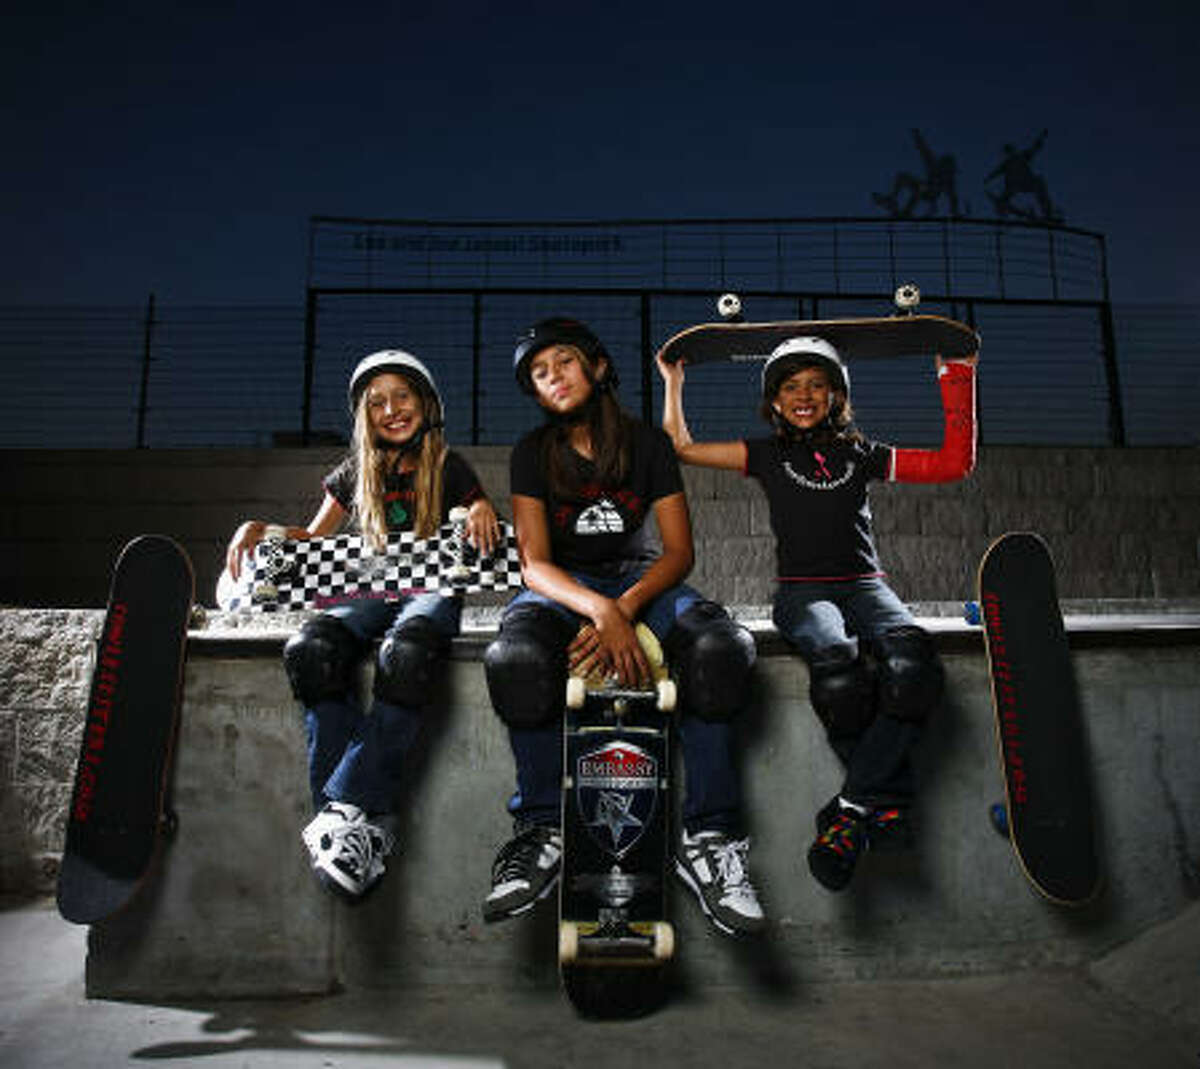 """The """"Sowle Sisters"""" — Valiant, 10, from left, Magnificent, 14, and Gentle Sowle, 8, — have been to the skate park every day since getting boards for Christmas and have quickly made skating the center of their lives."""